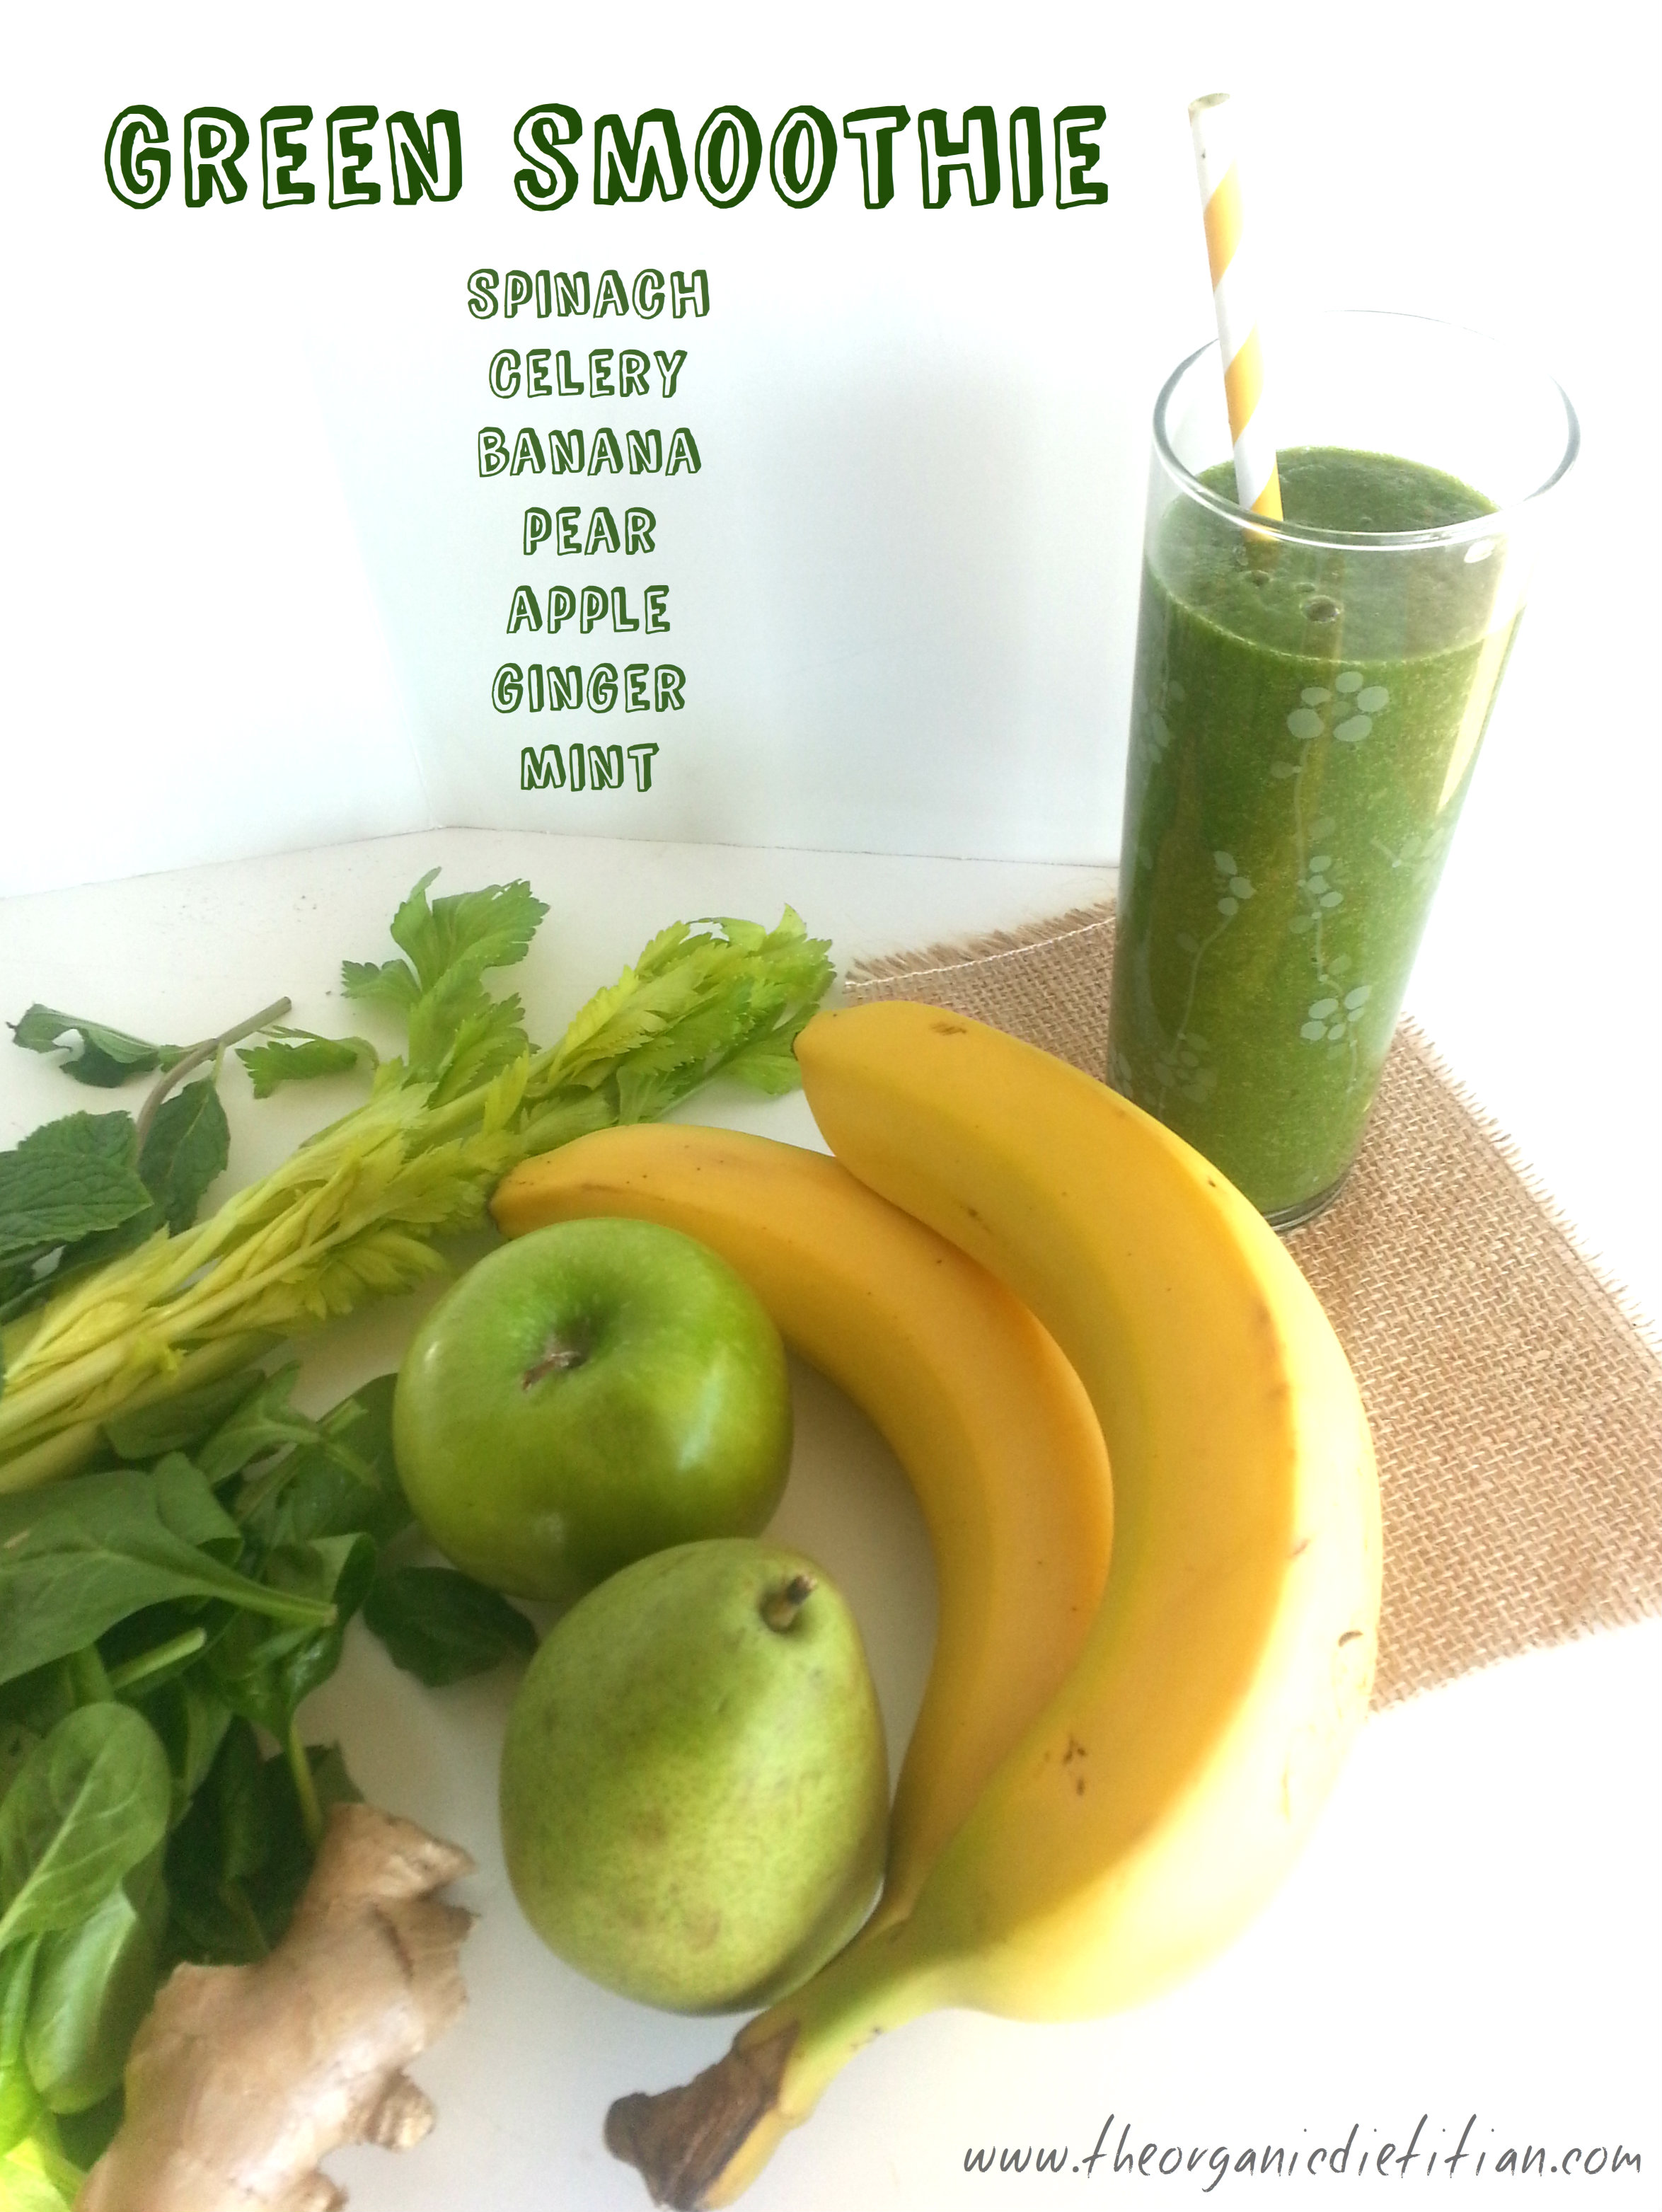 Get More Greens...Try A Green Smoothie Or Green Juice